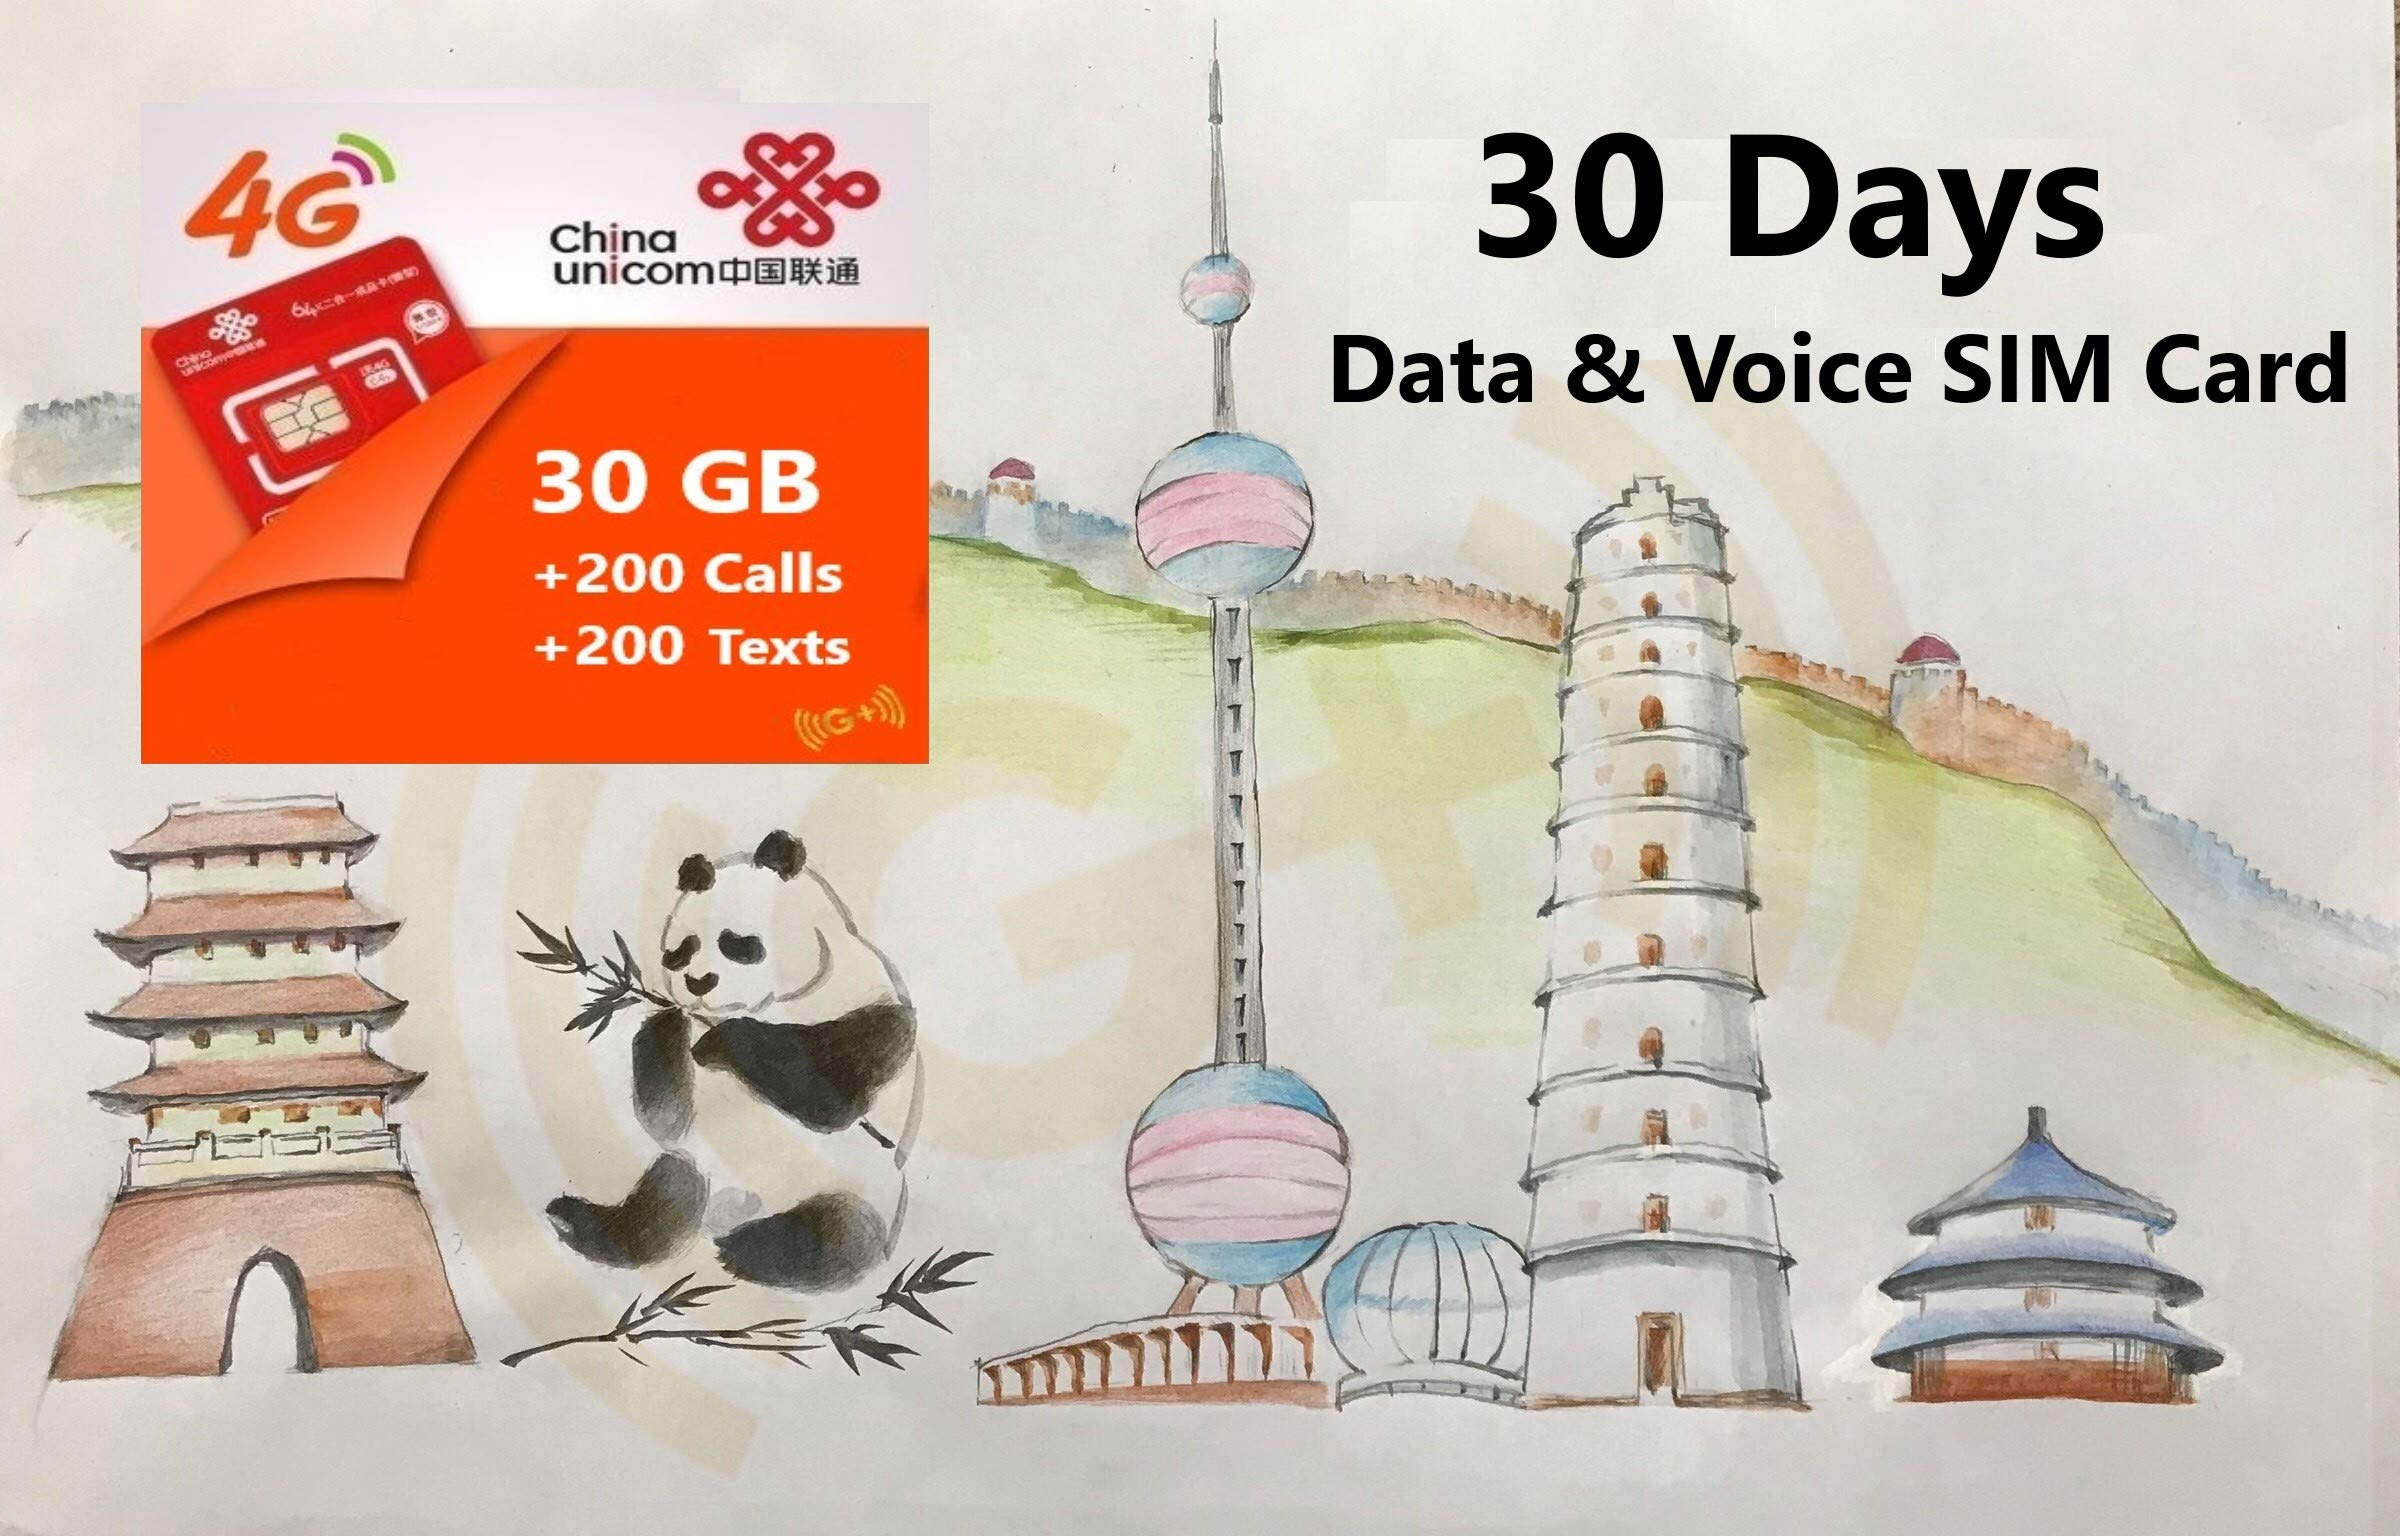 China 4G LTE Voice and Data Prepaid SIM Card with Chinese Phone Number, 30GB Data, 200 Minutes Talking, 200 Texts. NO Contract, Plug and Play by G Plus Global